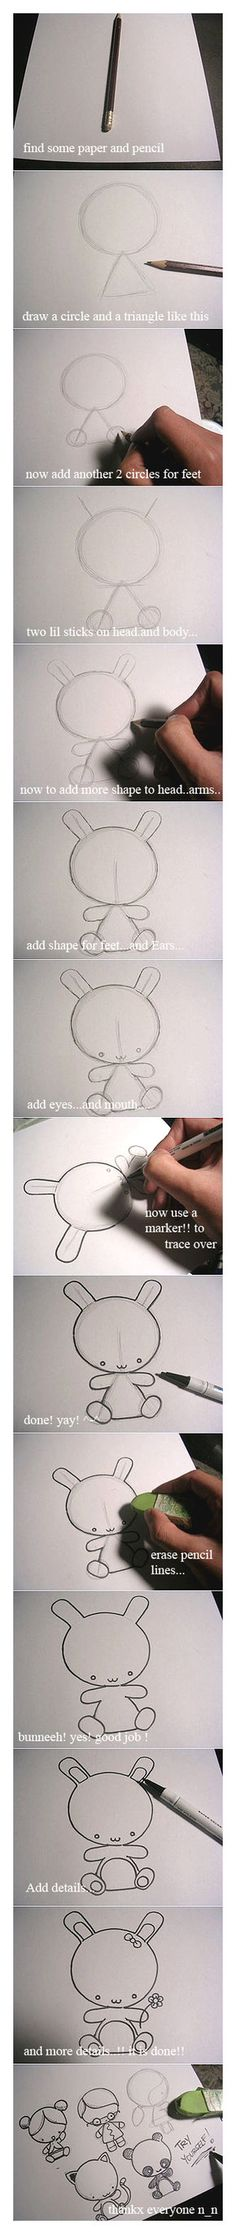 Draw a chibi bunny tutoriaL by ~Blackmago on deviantART. Appliqué art?